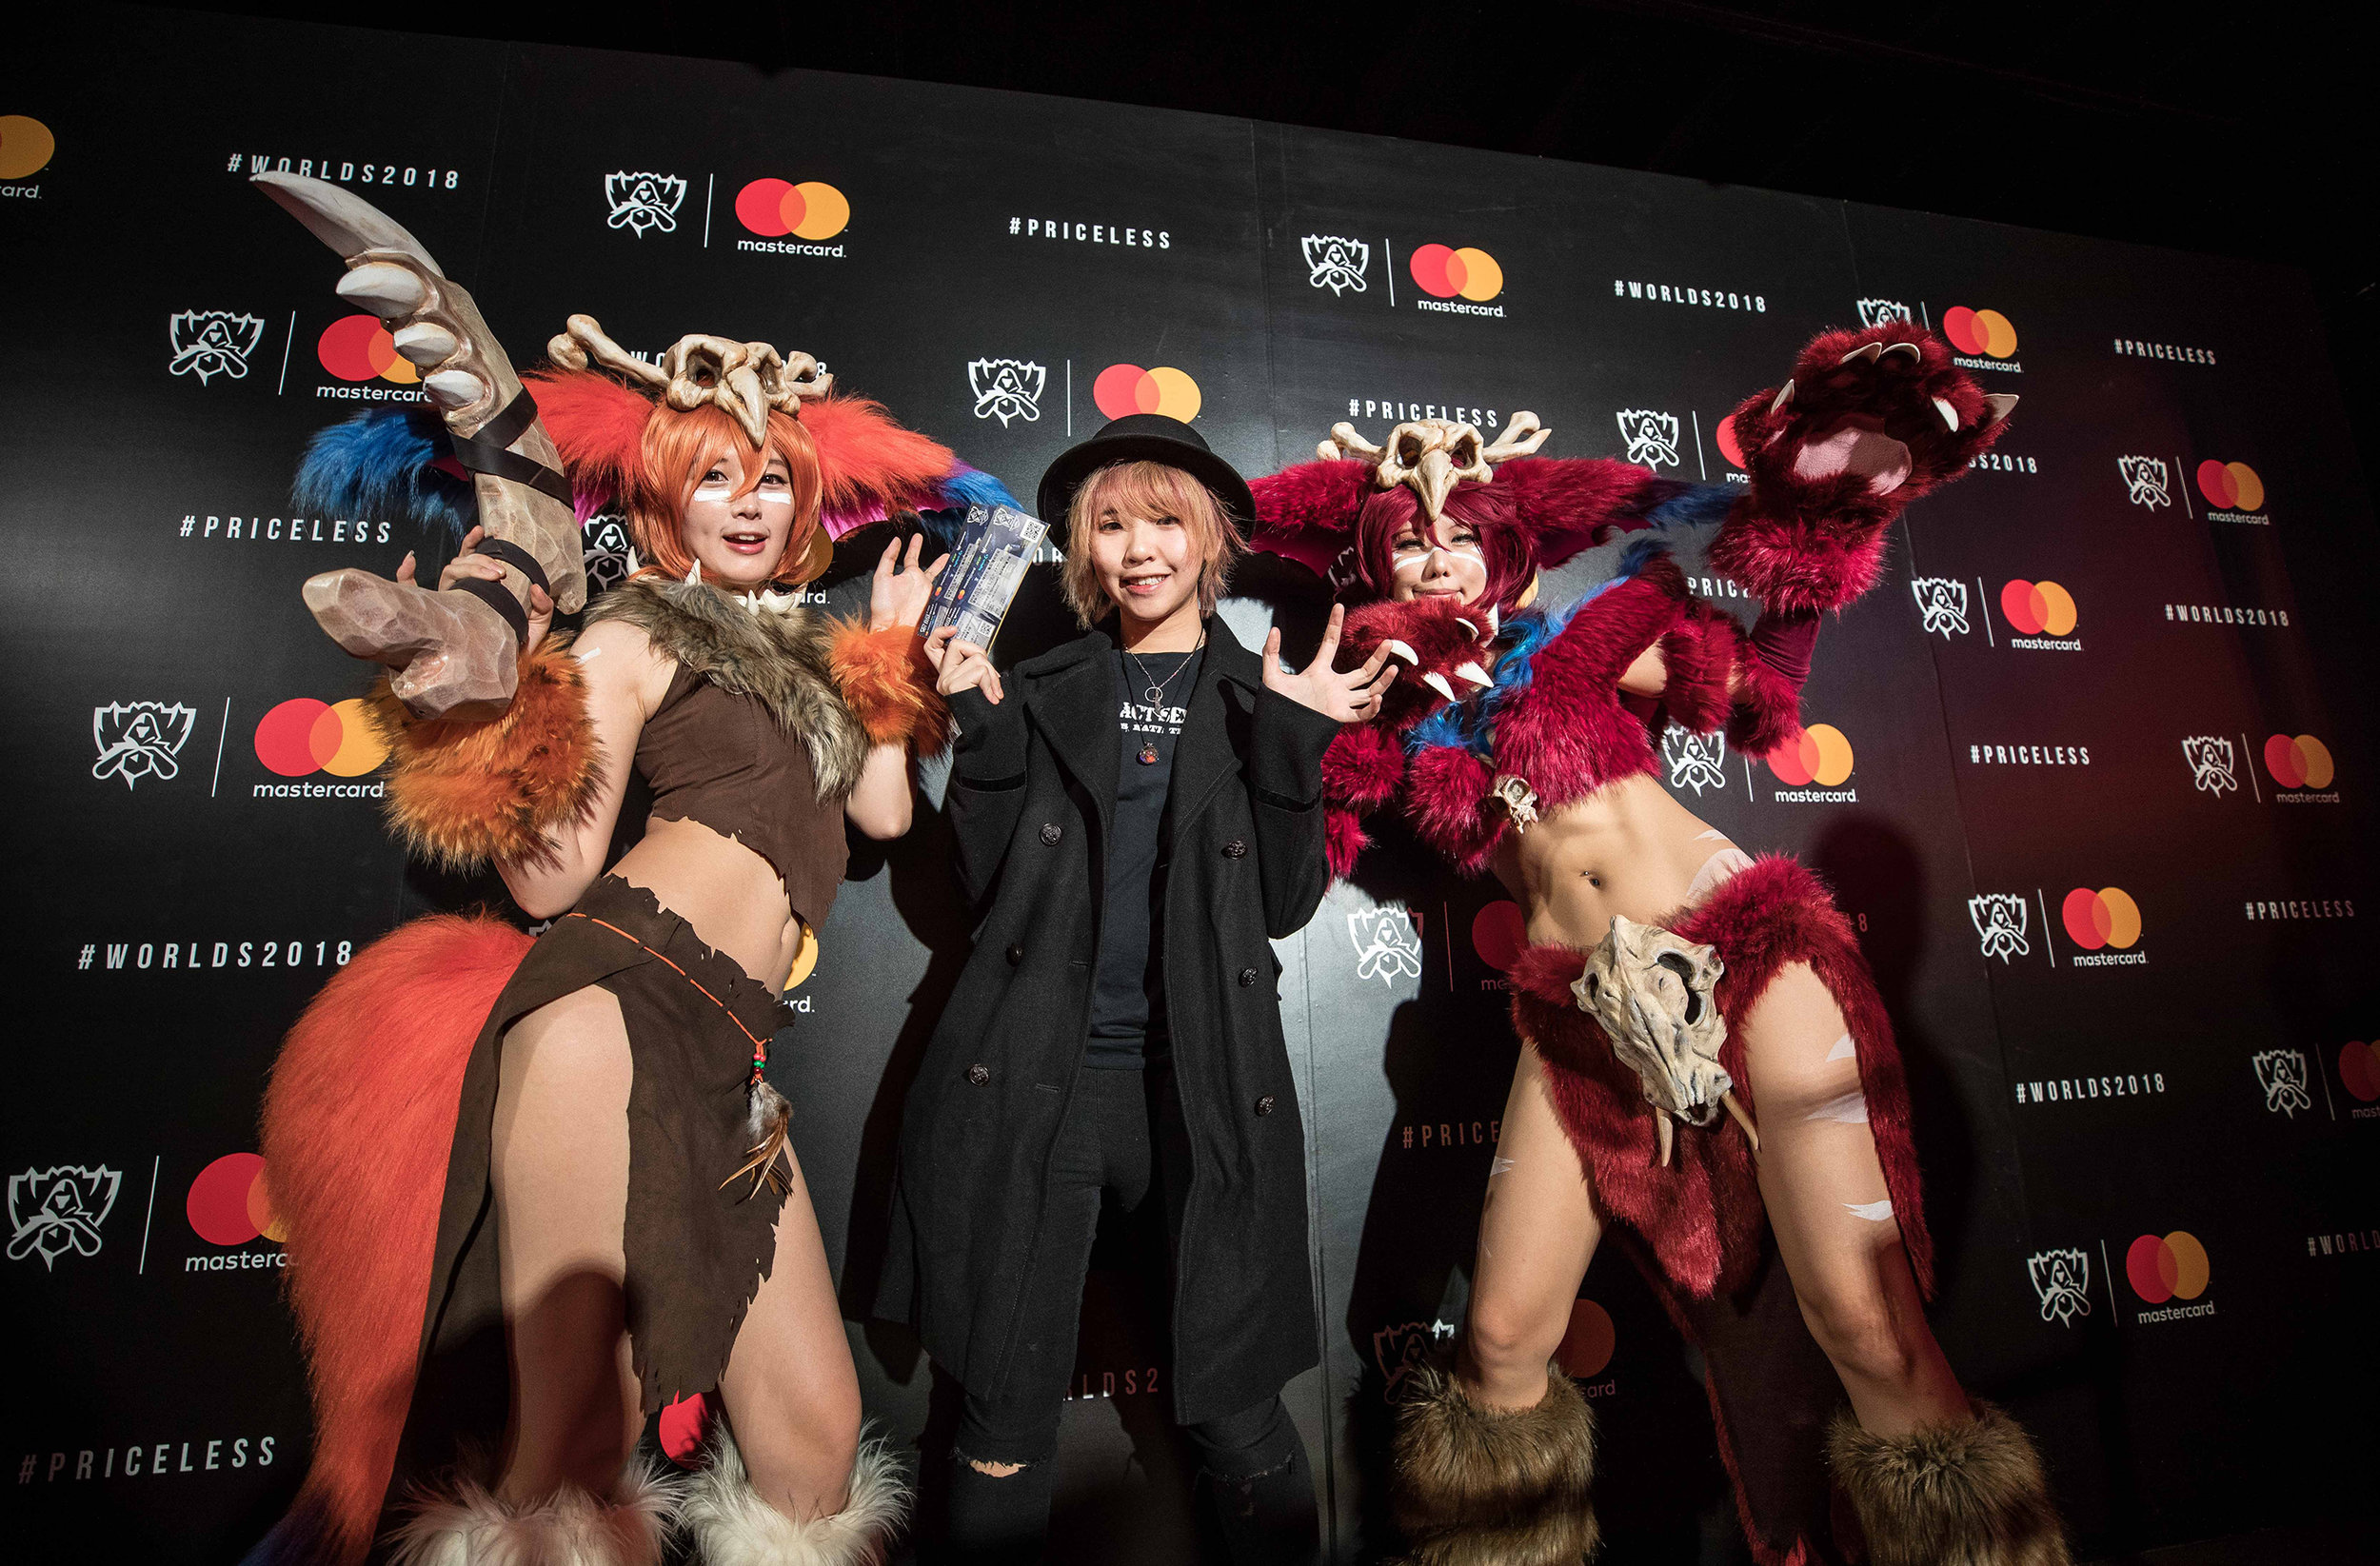 Cosplayers entertaining the fans at Mastercard Nexus, 2018 League of Legends World Championship on November 3, 2018 in Incheon, South Korea.  Photo by Hannah Smith / ESPAT Media for Mastercard